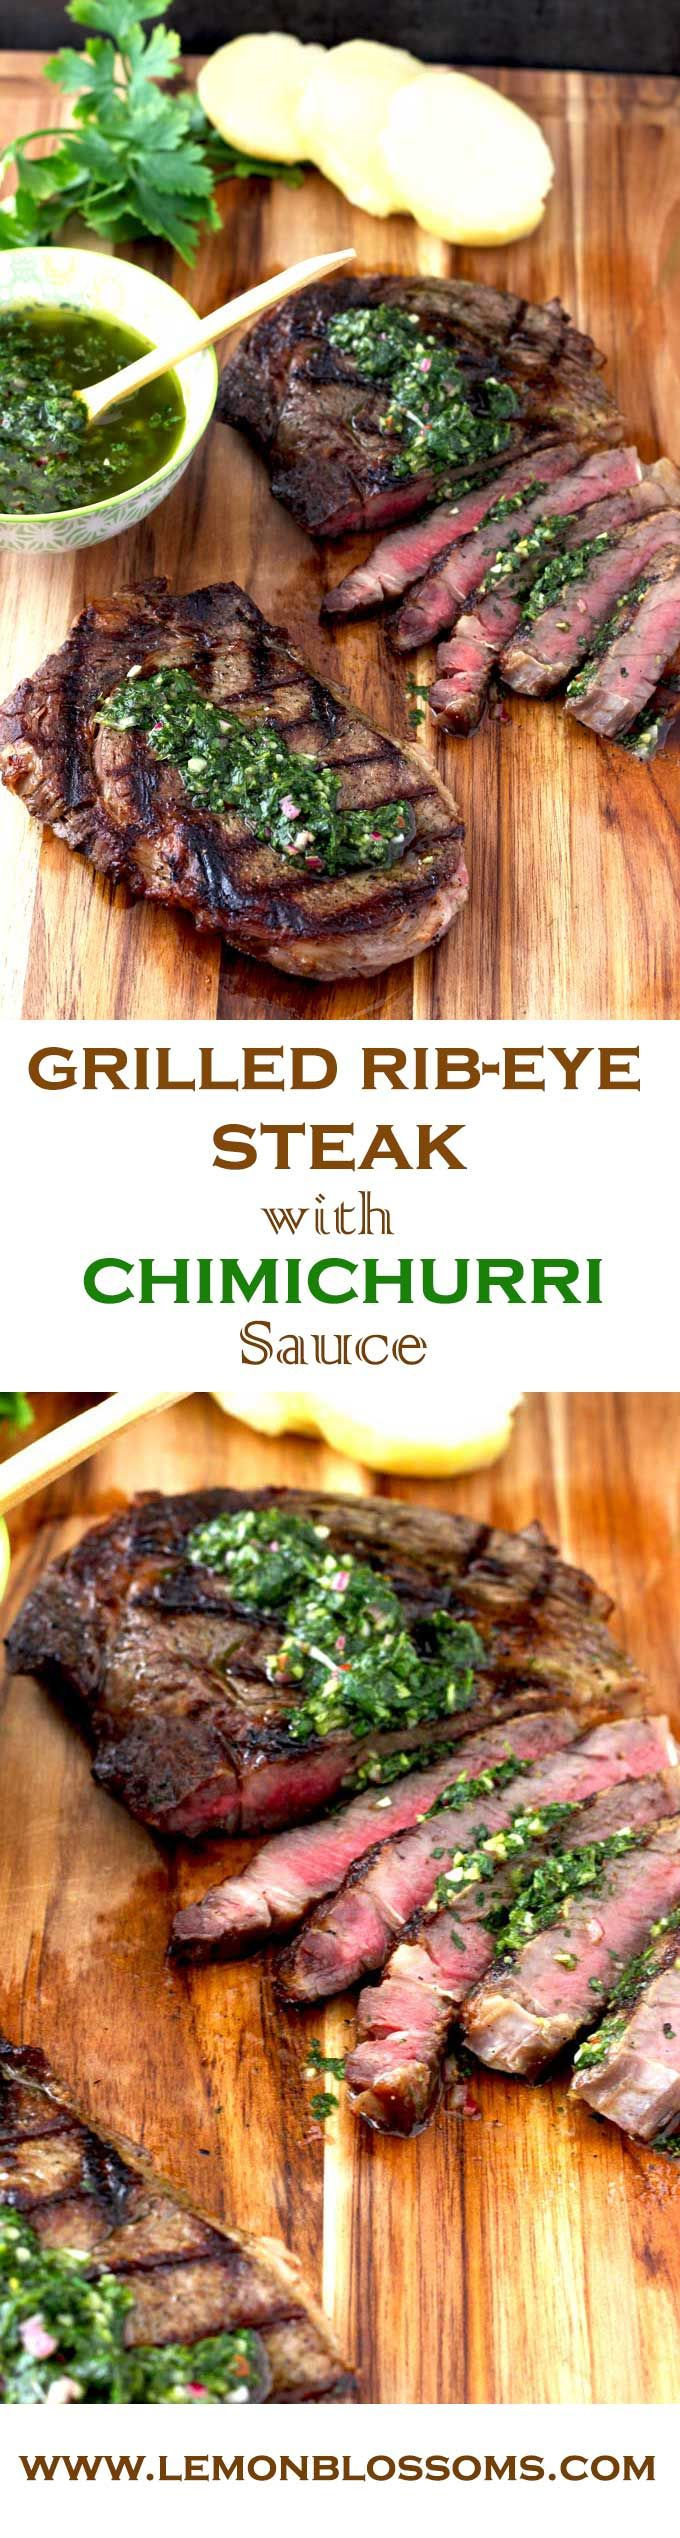 Perfectly grilled Rib-Eye Steaks with the most delicious, flavorful, simple and healthy Chimichurri Sauce (the way my grandma used to make it!). Grilling a steak only takes a few minutes and the Chimichurri Sauce can be done in less than 10 minutes! A win-win anytime!! via @https://www.pinterest.com/lmnblossoms/